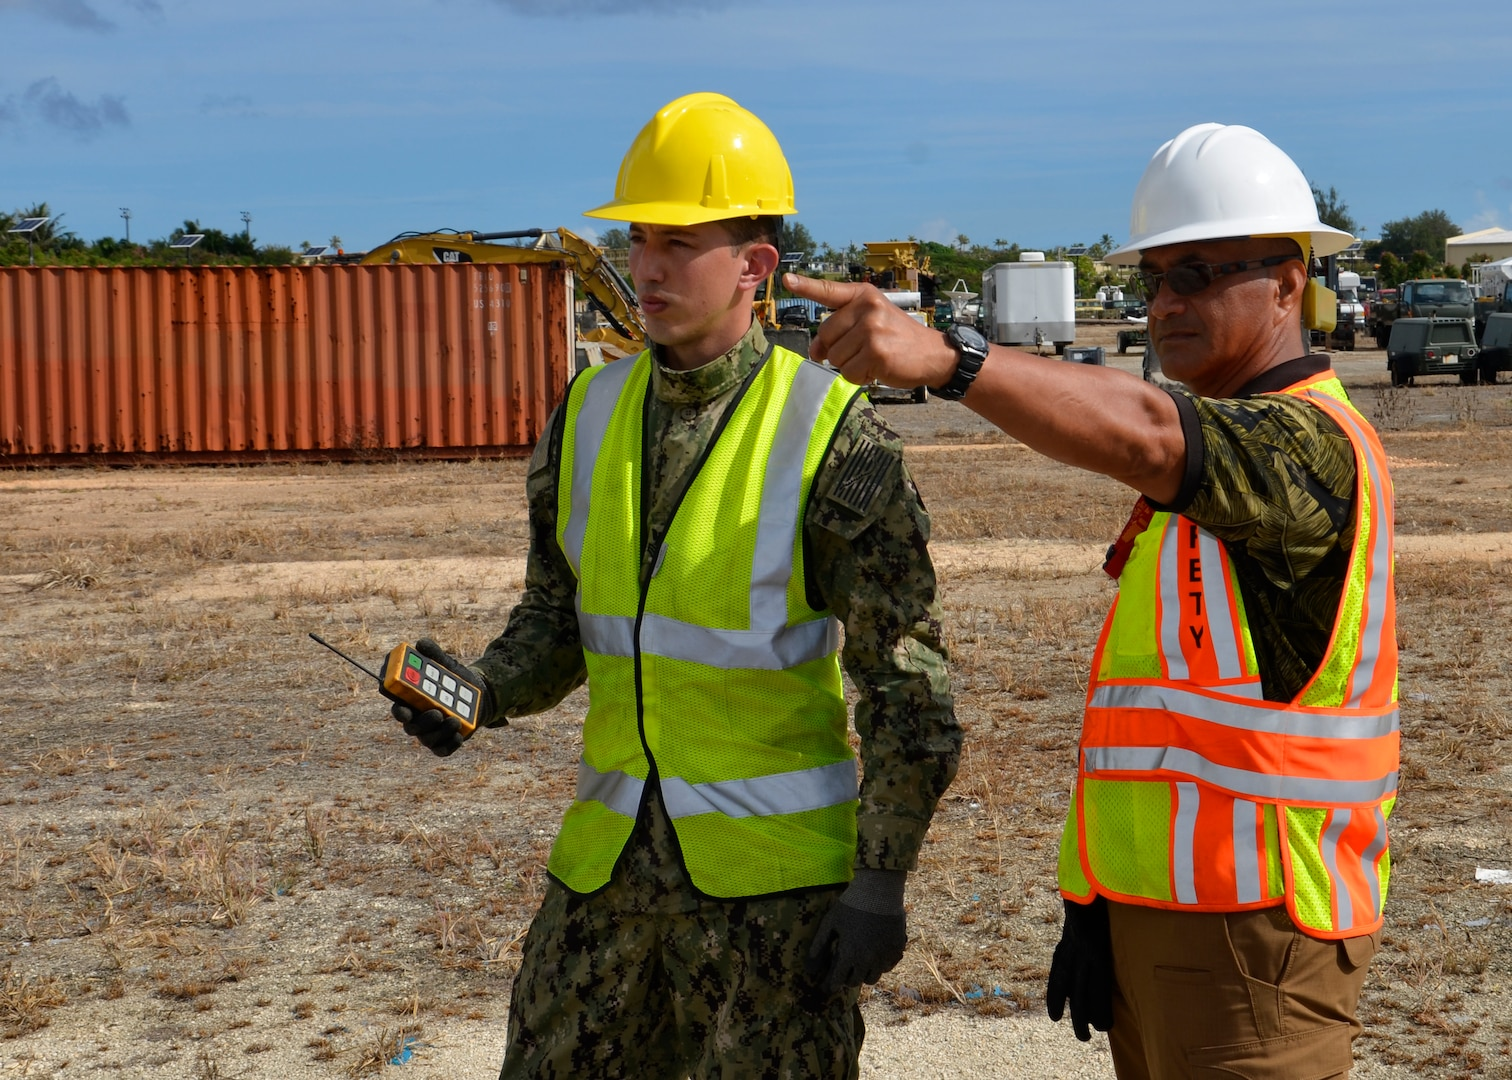 man points in distance while talking to another man, both in safety vest